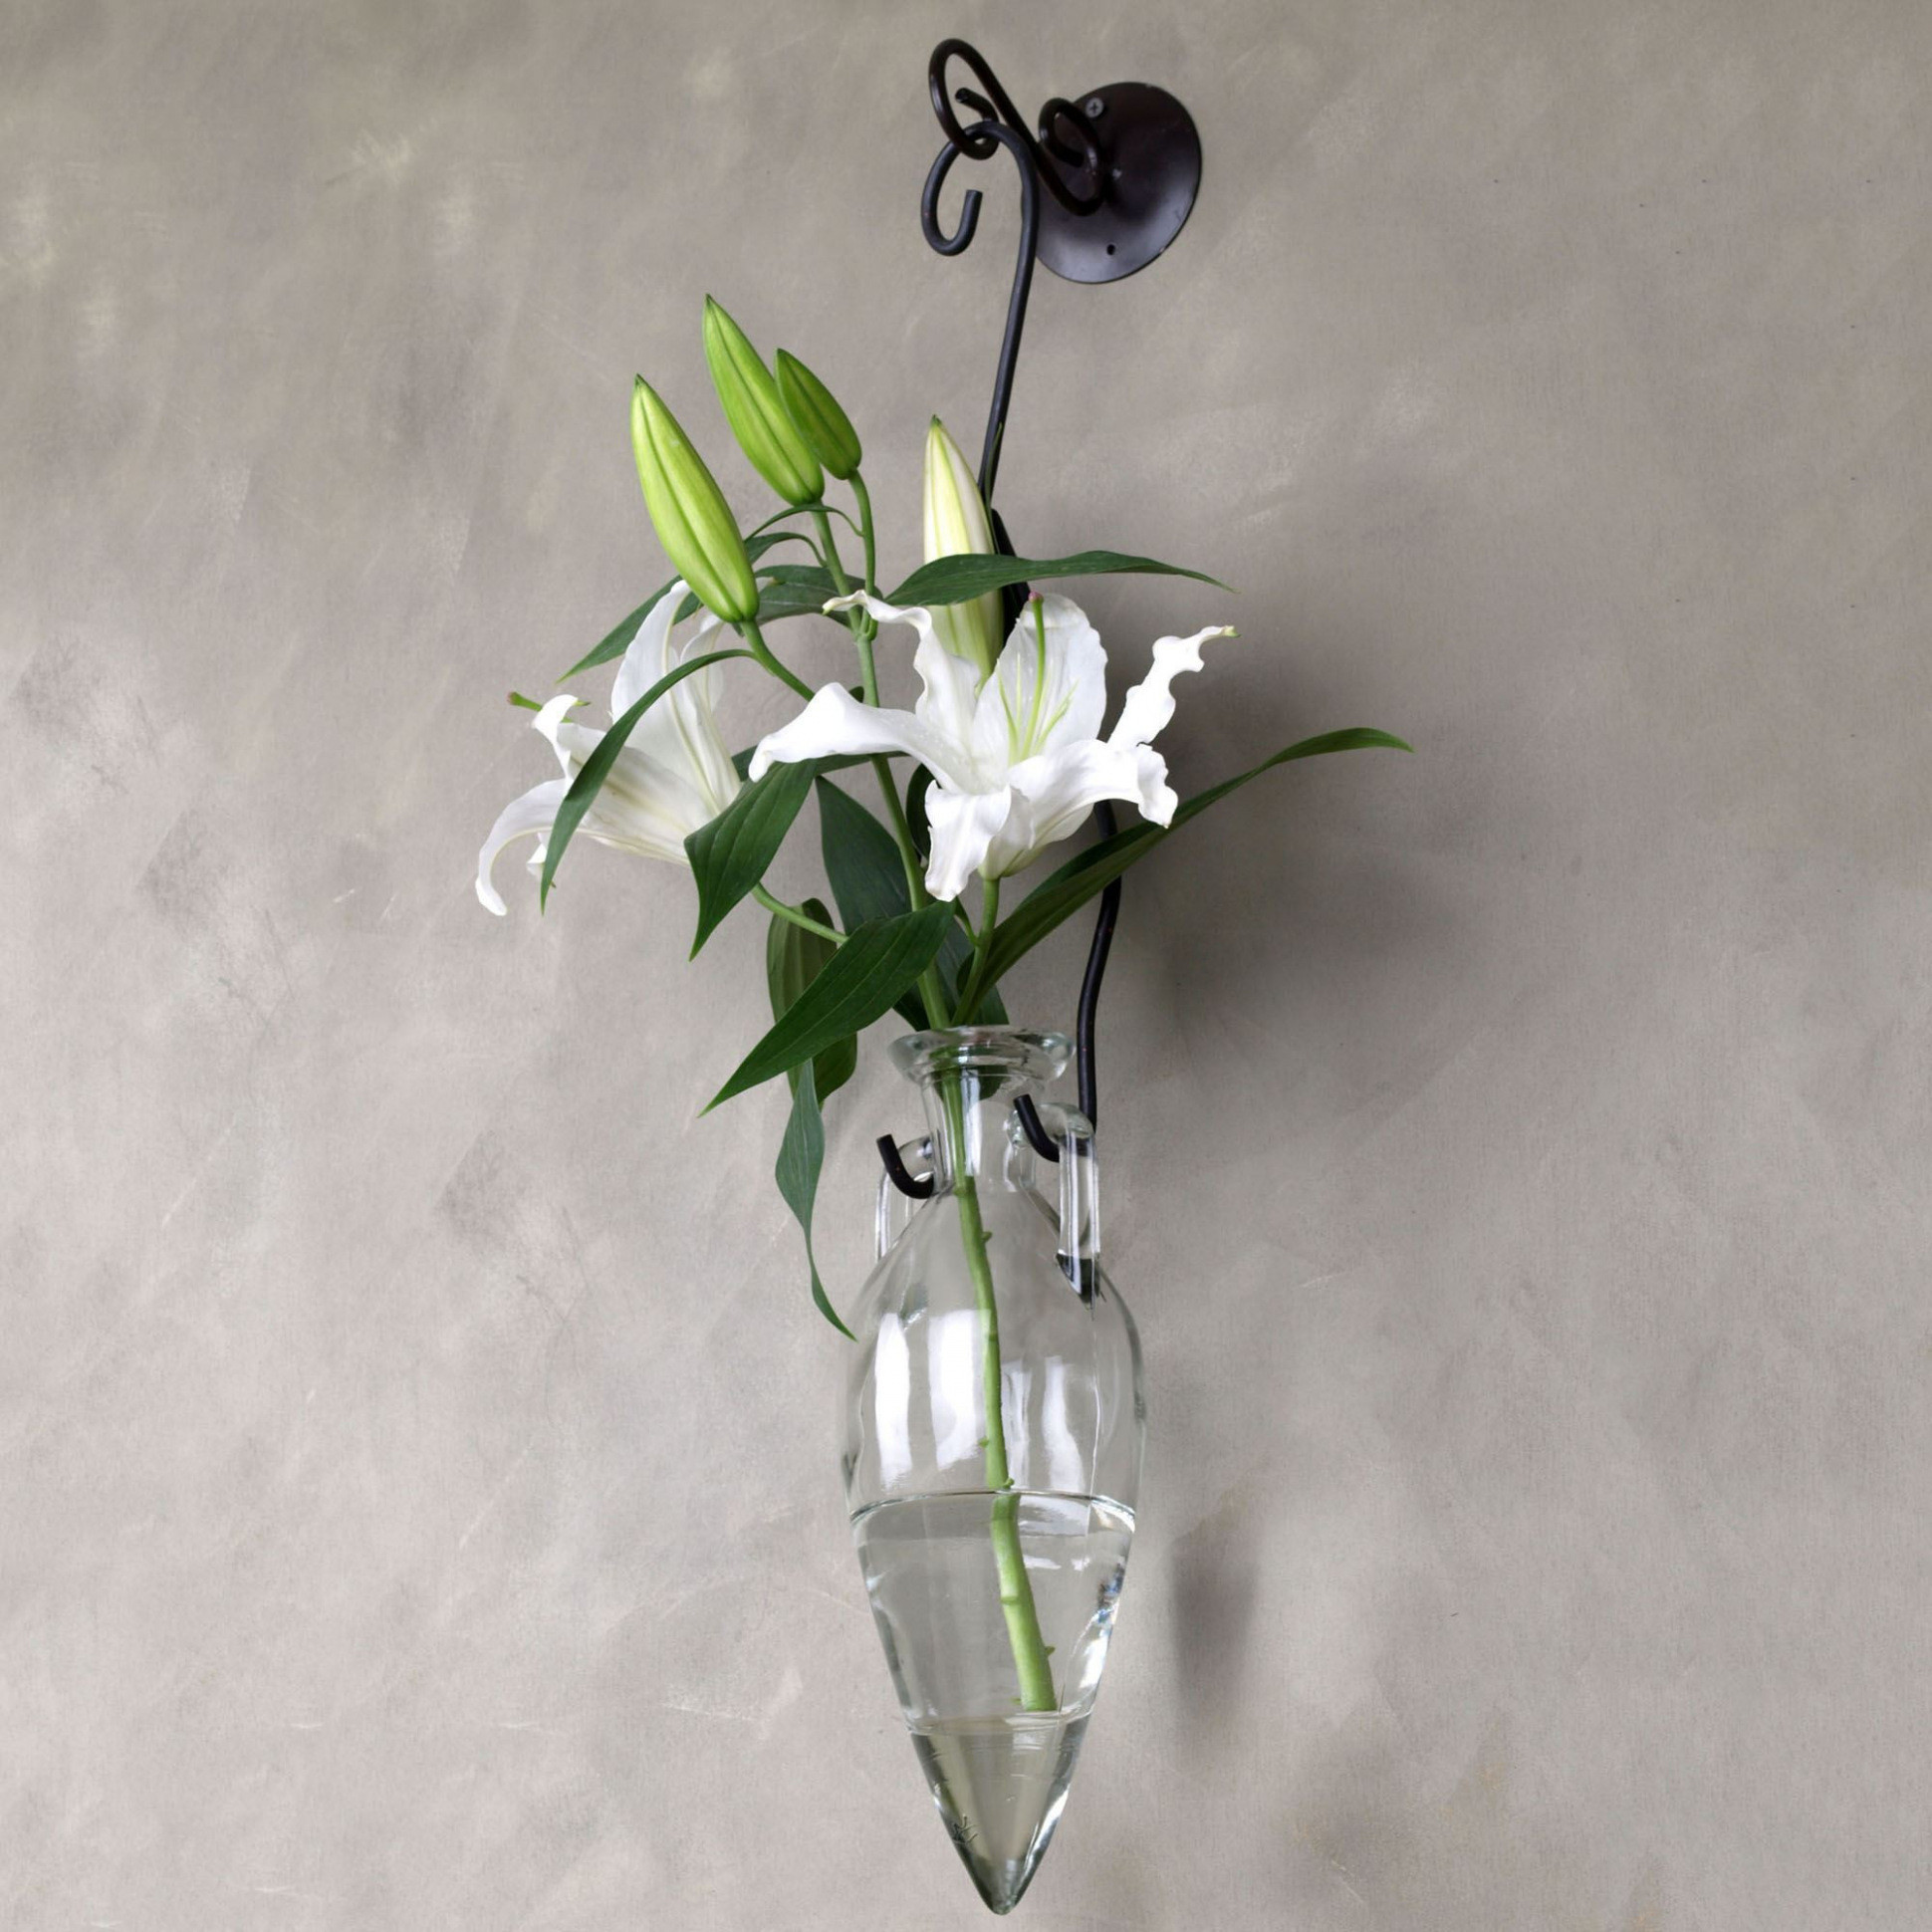 dark grey vase of 10 fresh black marble vase bogekompresorturkiye com regarding h vases wall hanging flower vase newspaper i 0d scheme wall scheme design outdoor wall